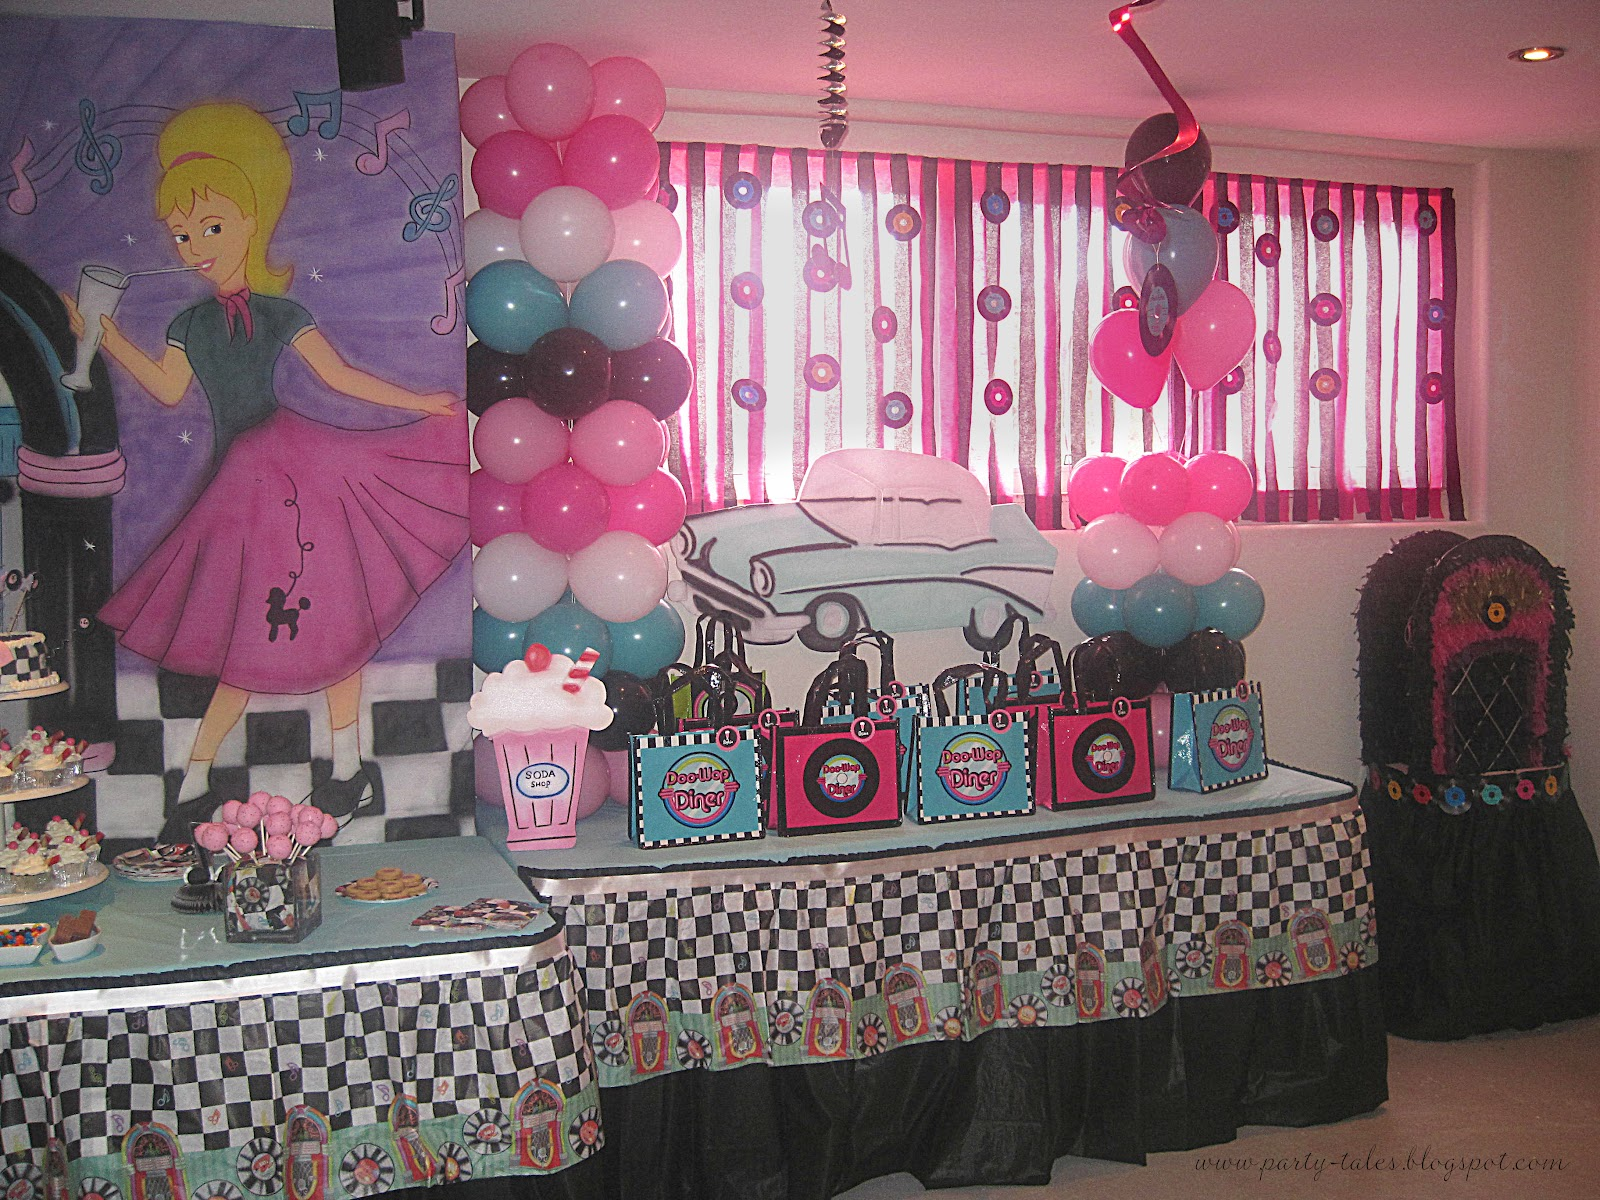 Party tales birthday party 50 39 s diner sock hop party for 50s party decoration ideas